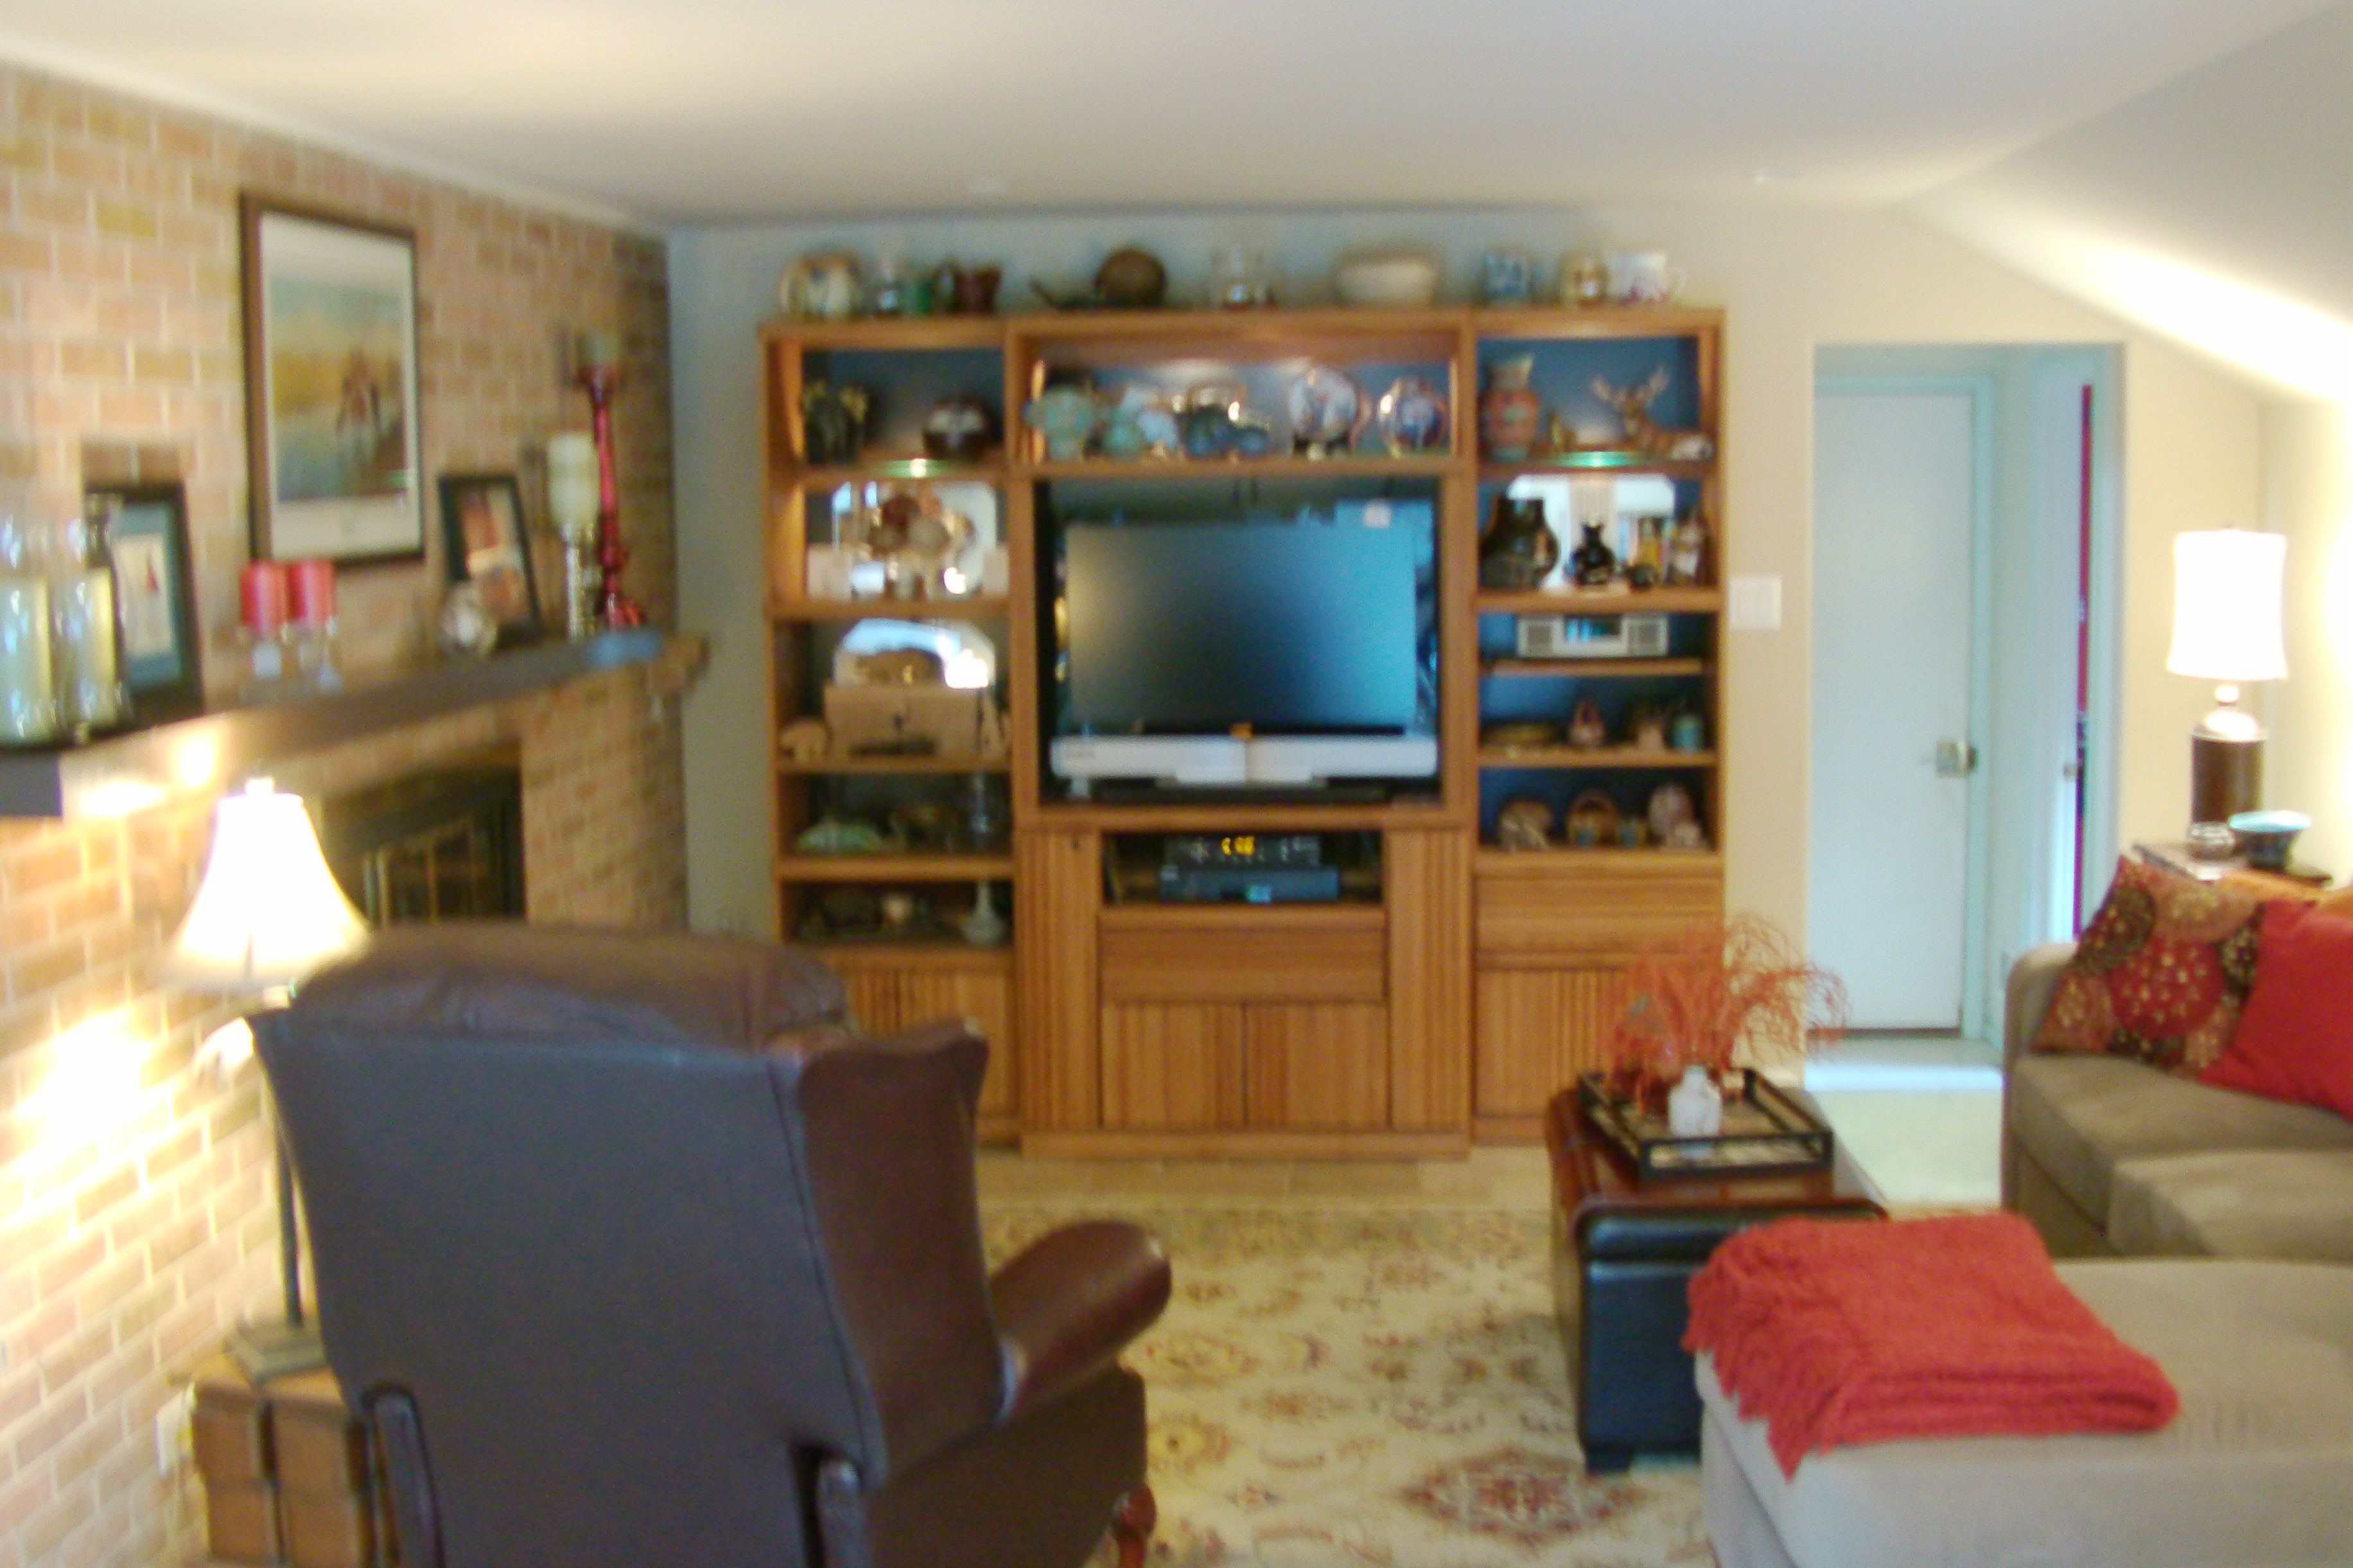 Transitional Fireplace Renovation In Cherry Hill NJ Next Level - Bathroom remodeling cherry hill nj